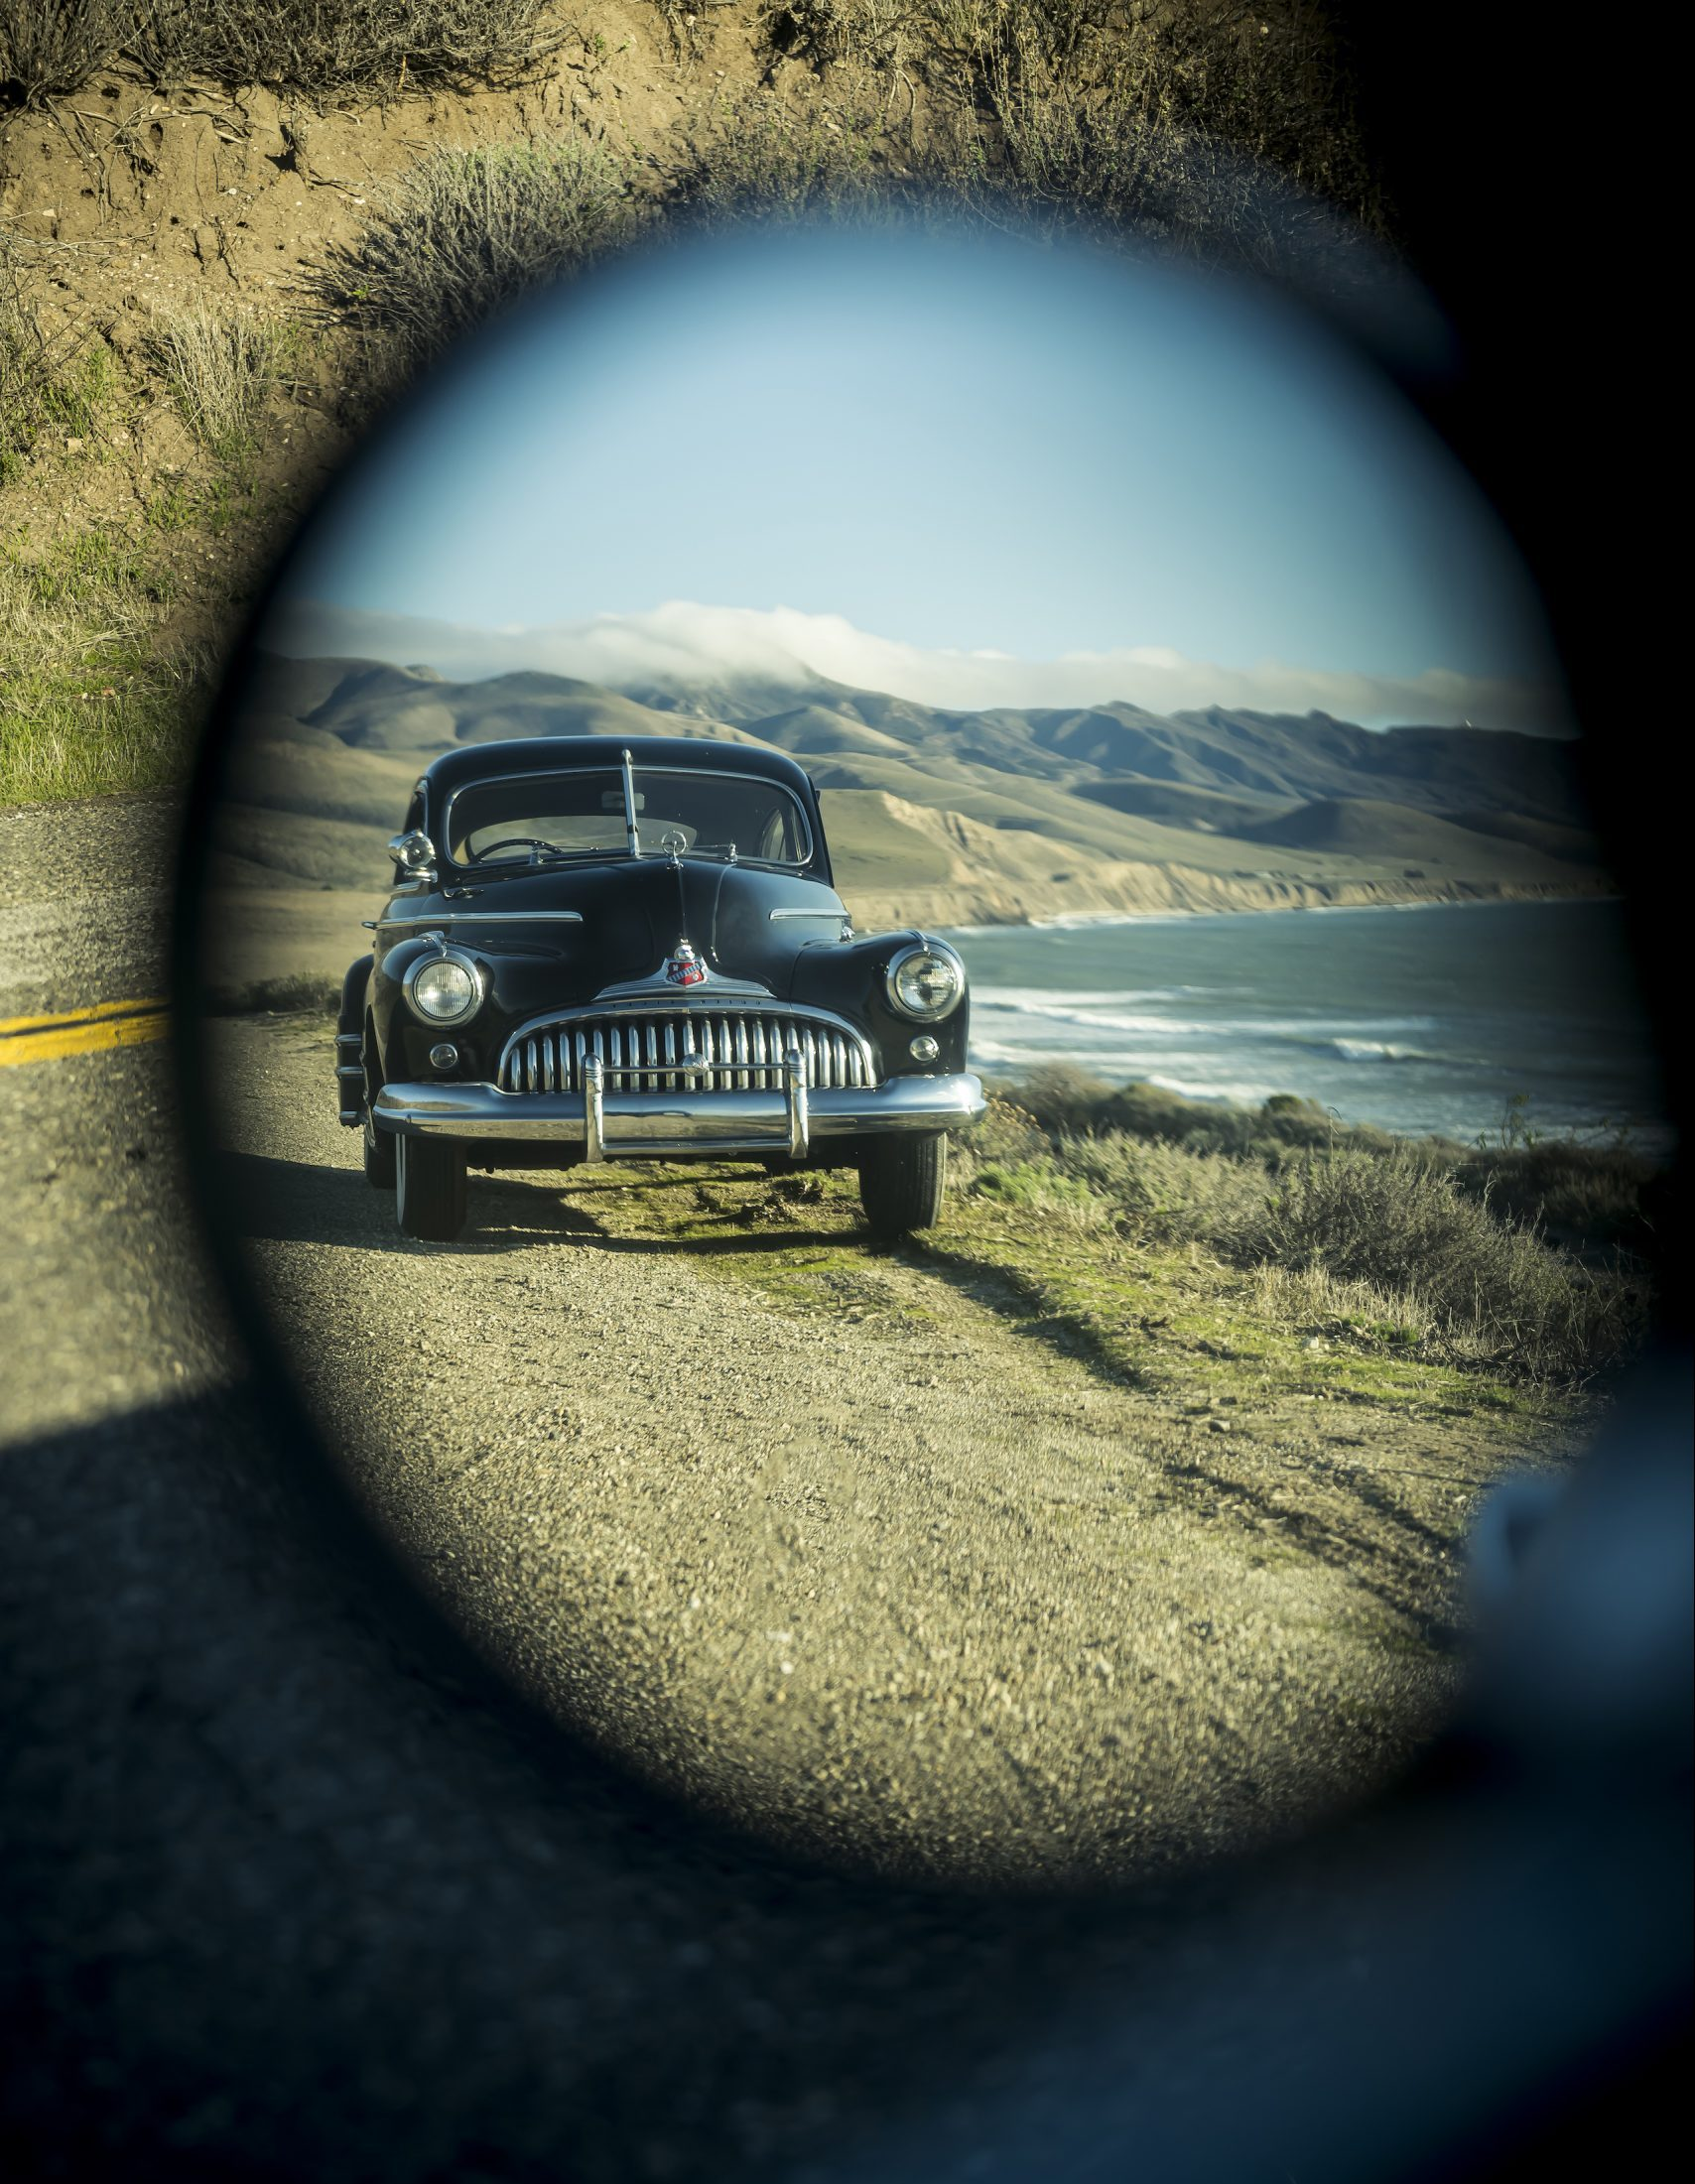 1946 Buick Special in rearview mirror